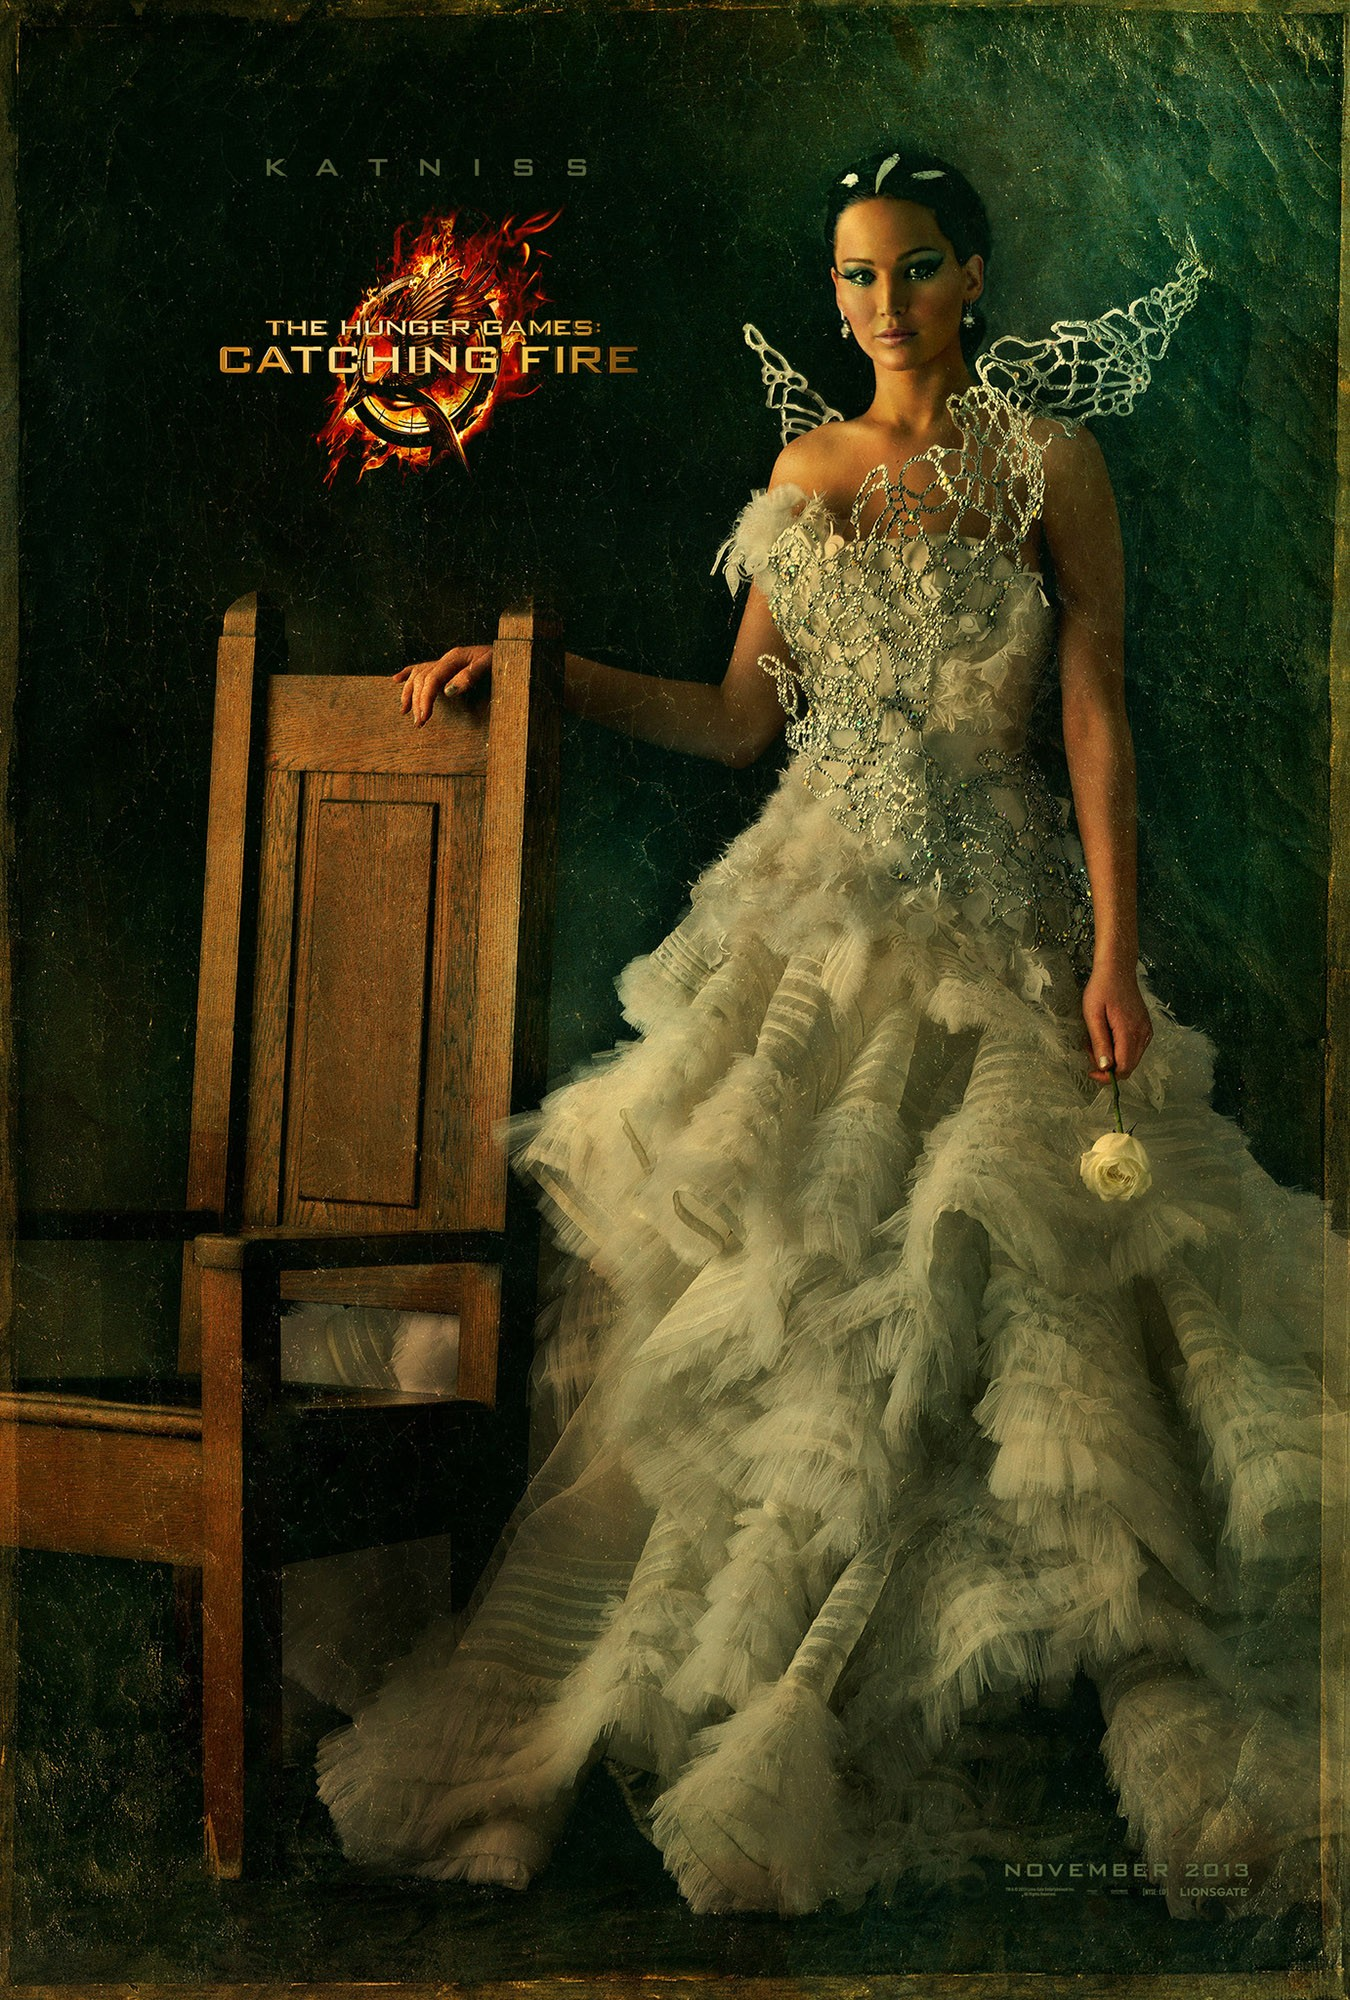 The Hunger Games Catching Fire - Poster - 008 - Katniss